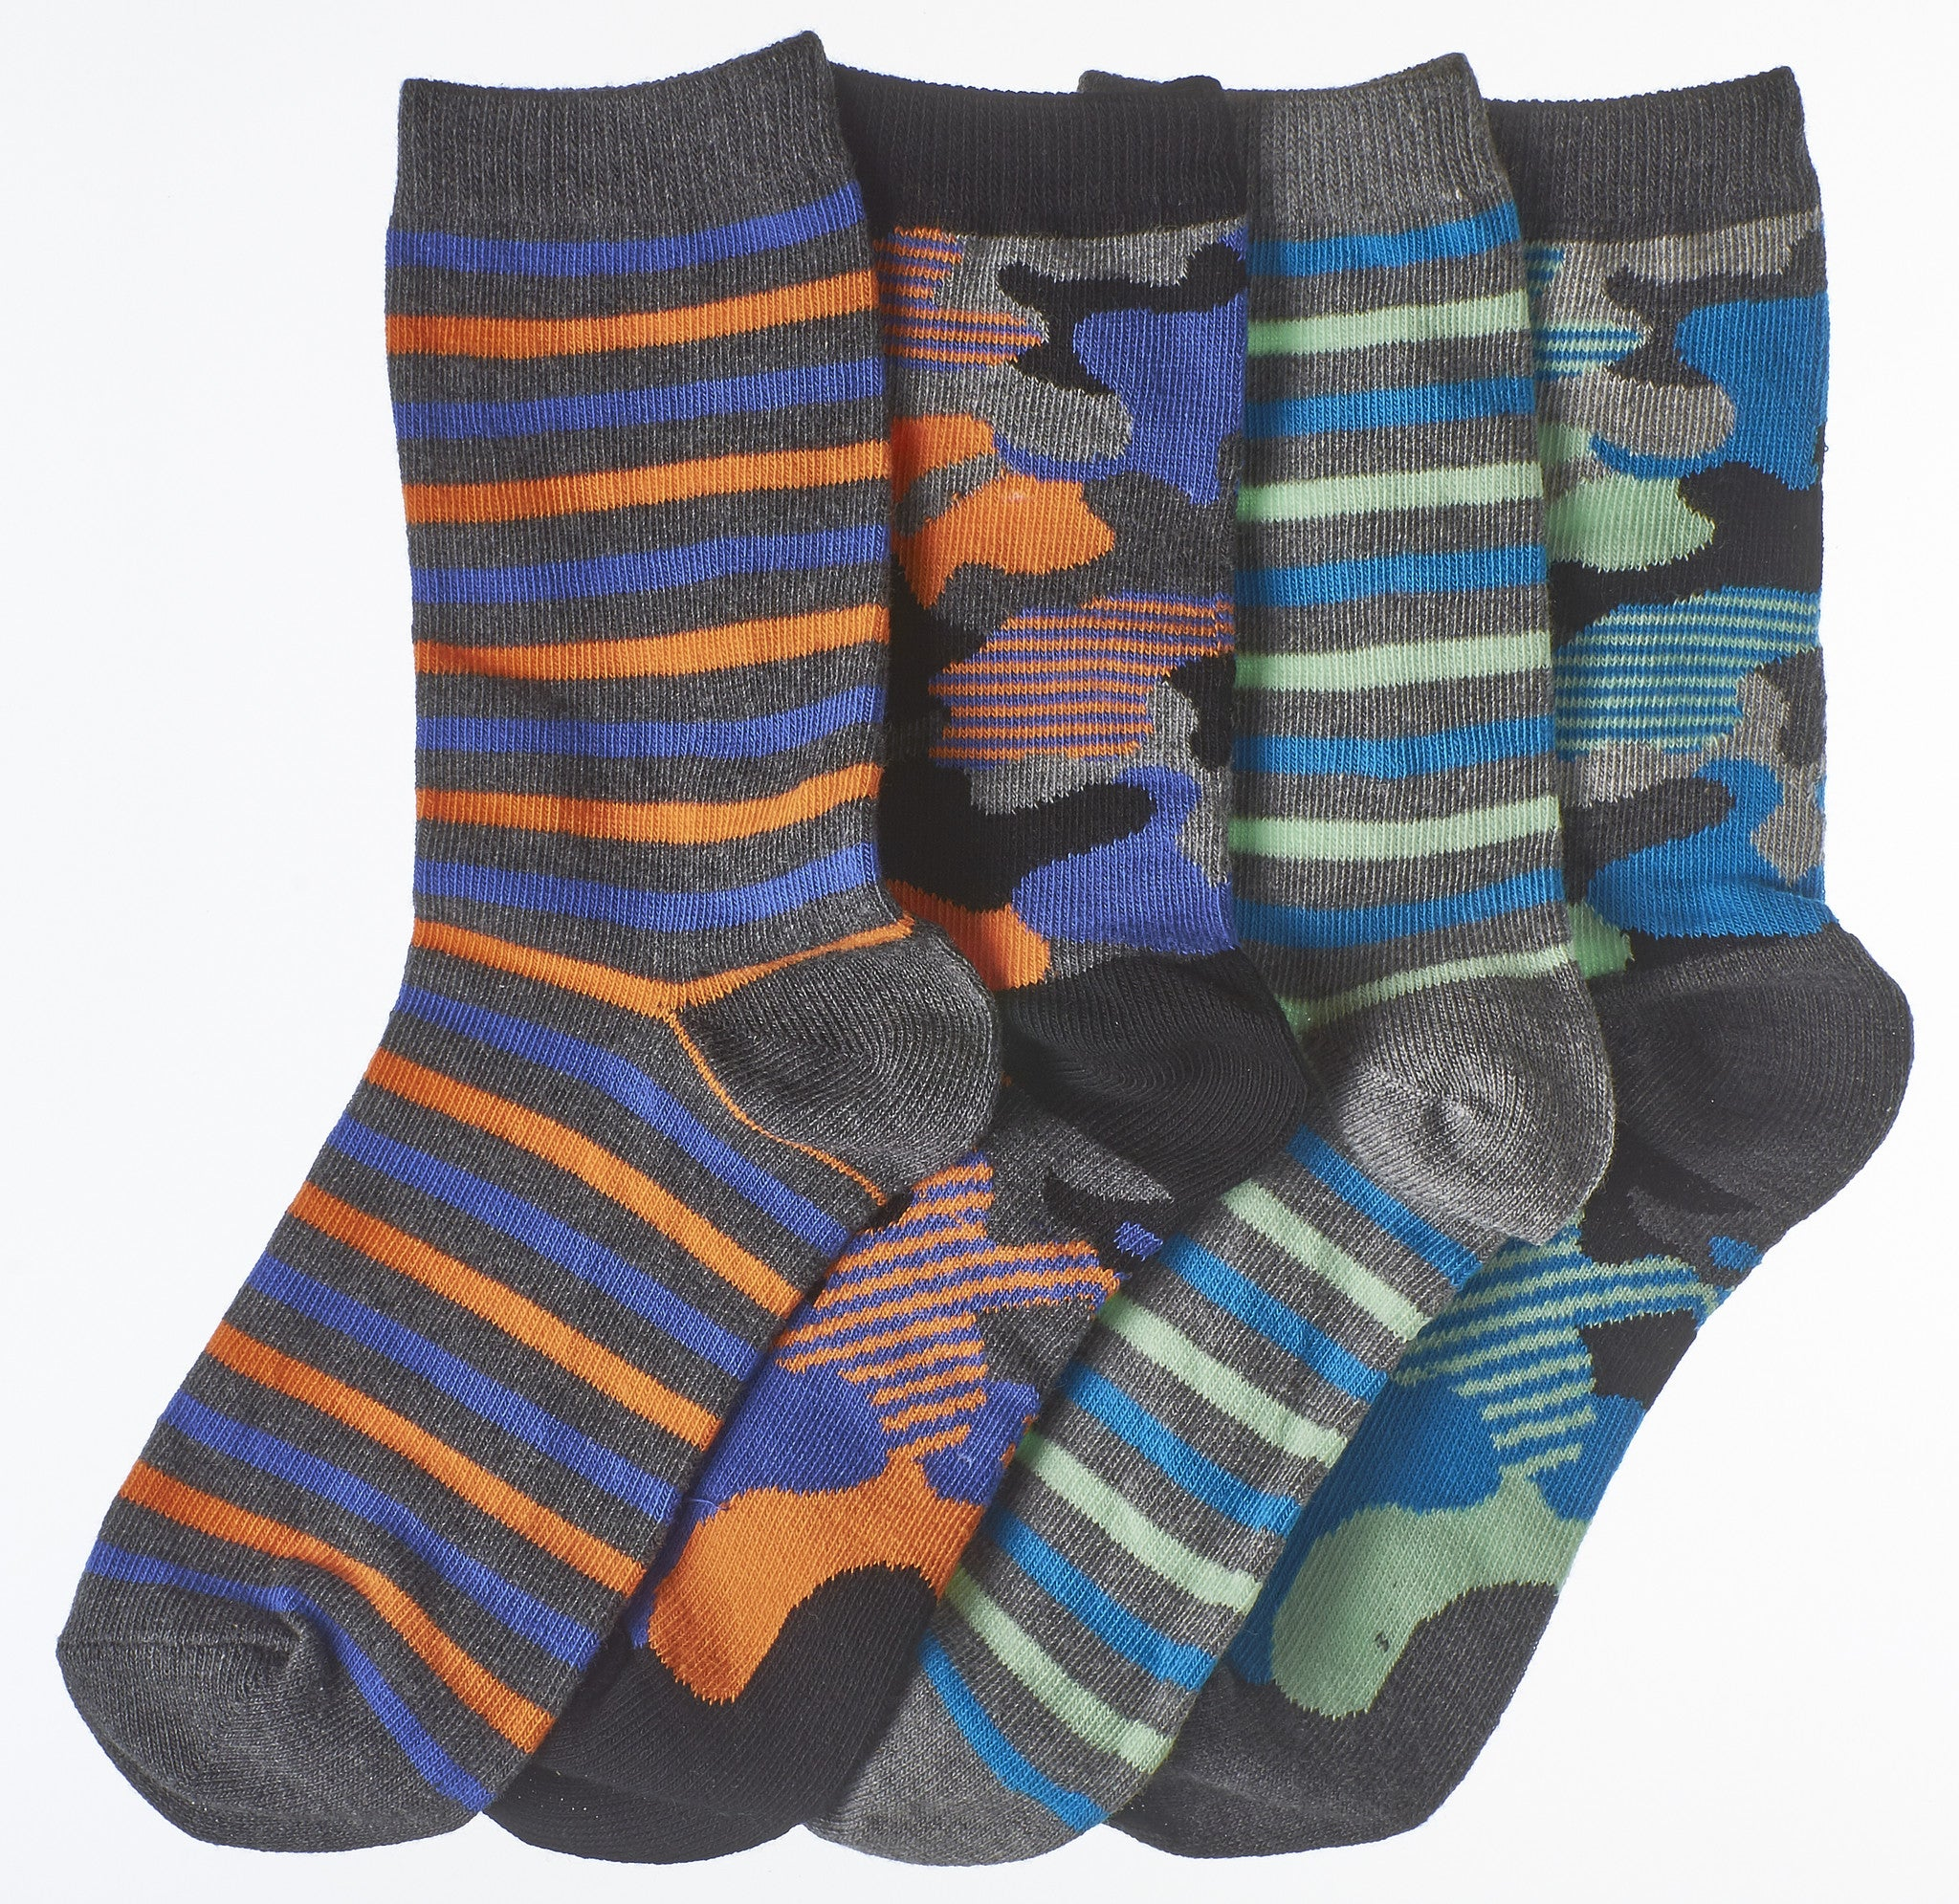 4-Pack Urban Camouflage & Stripes Boys Crew Socks